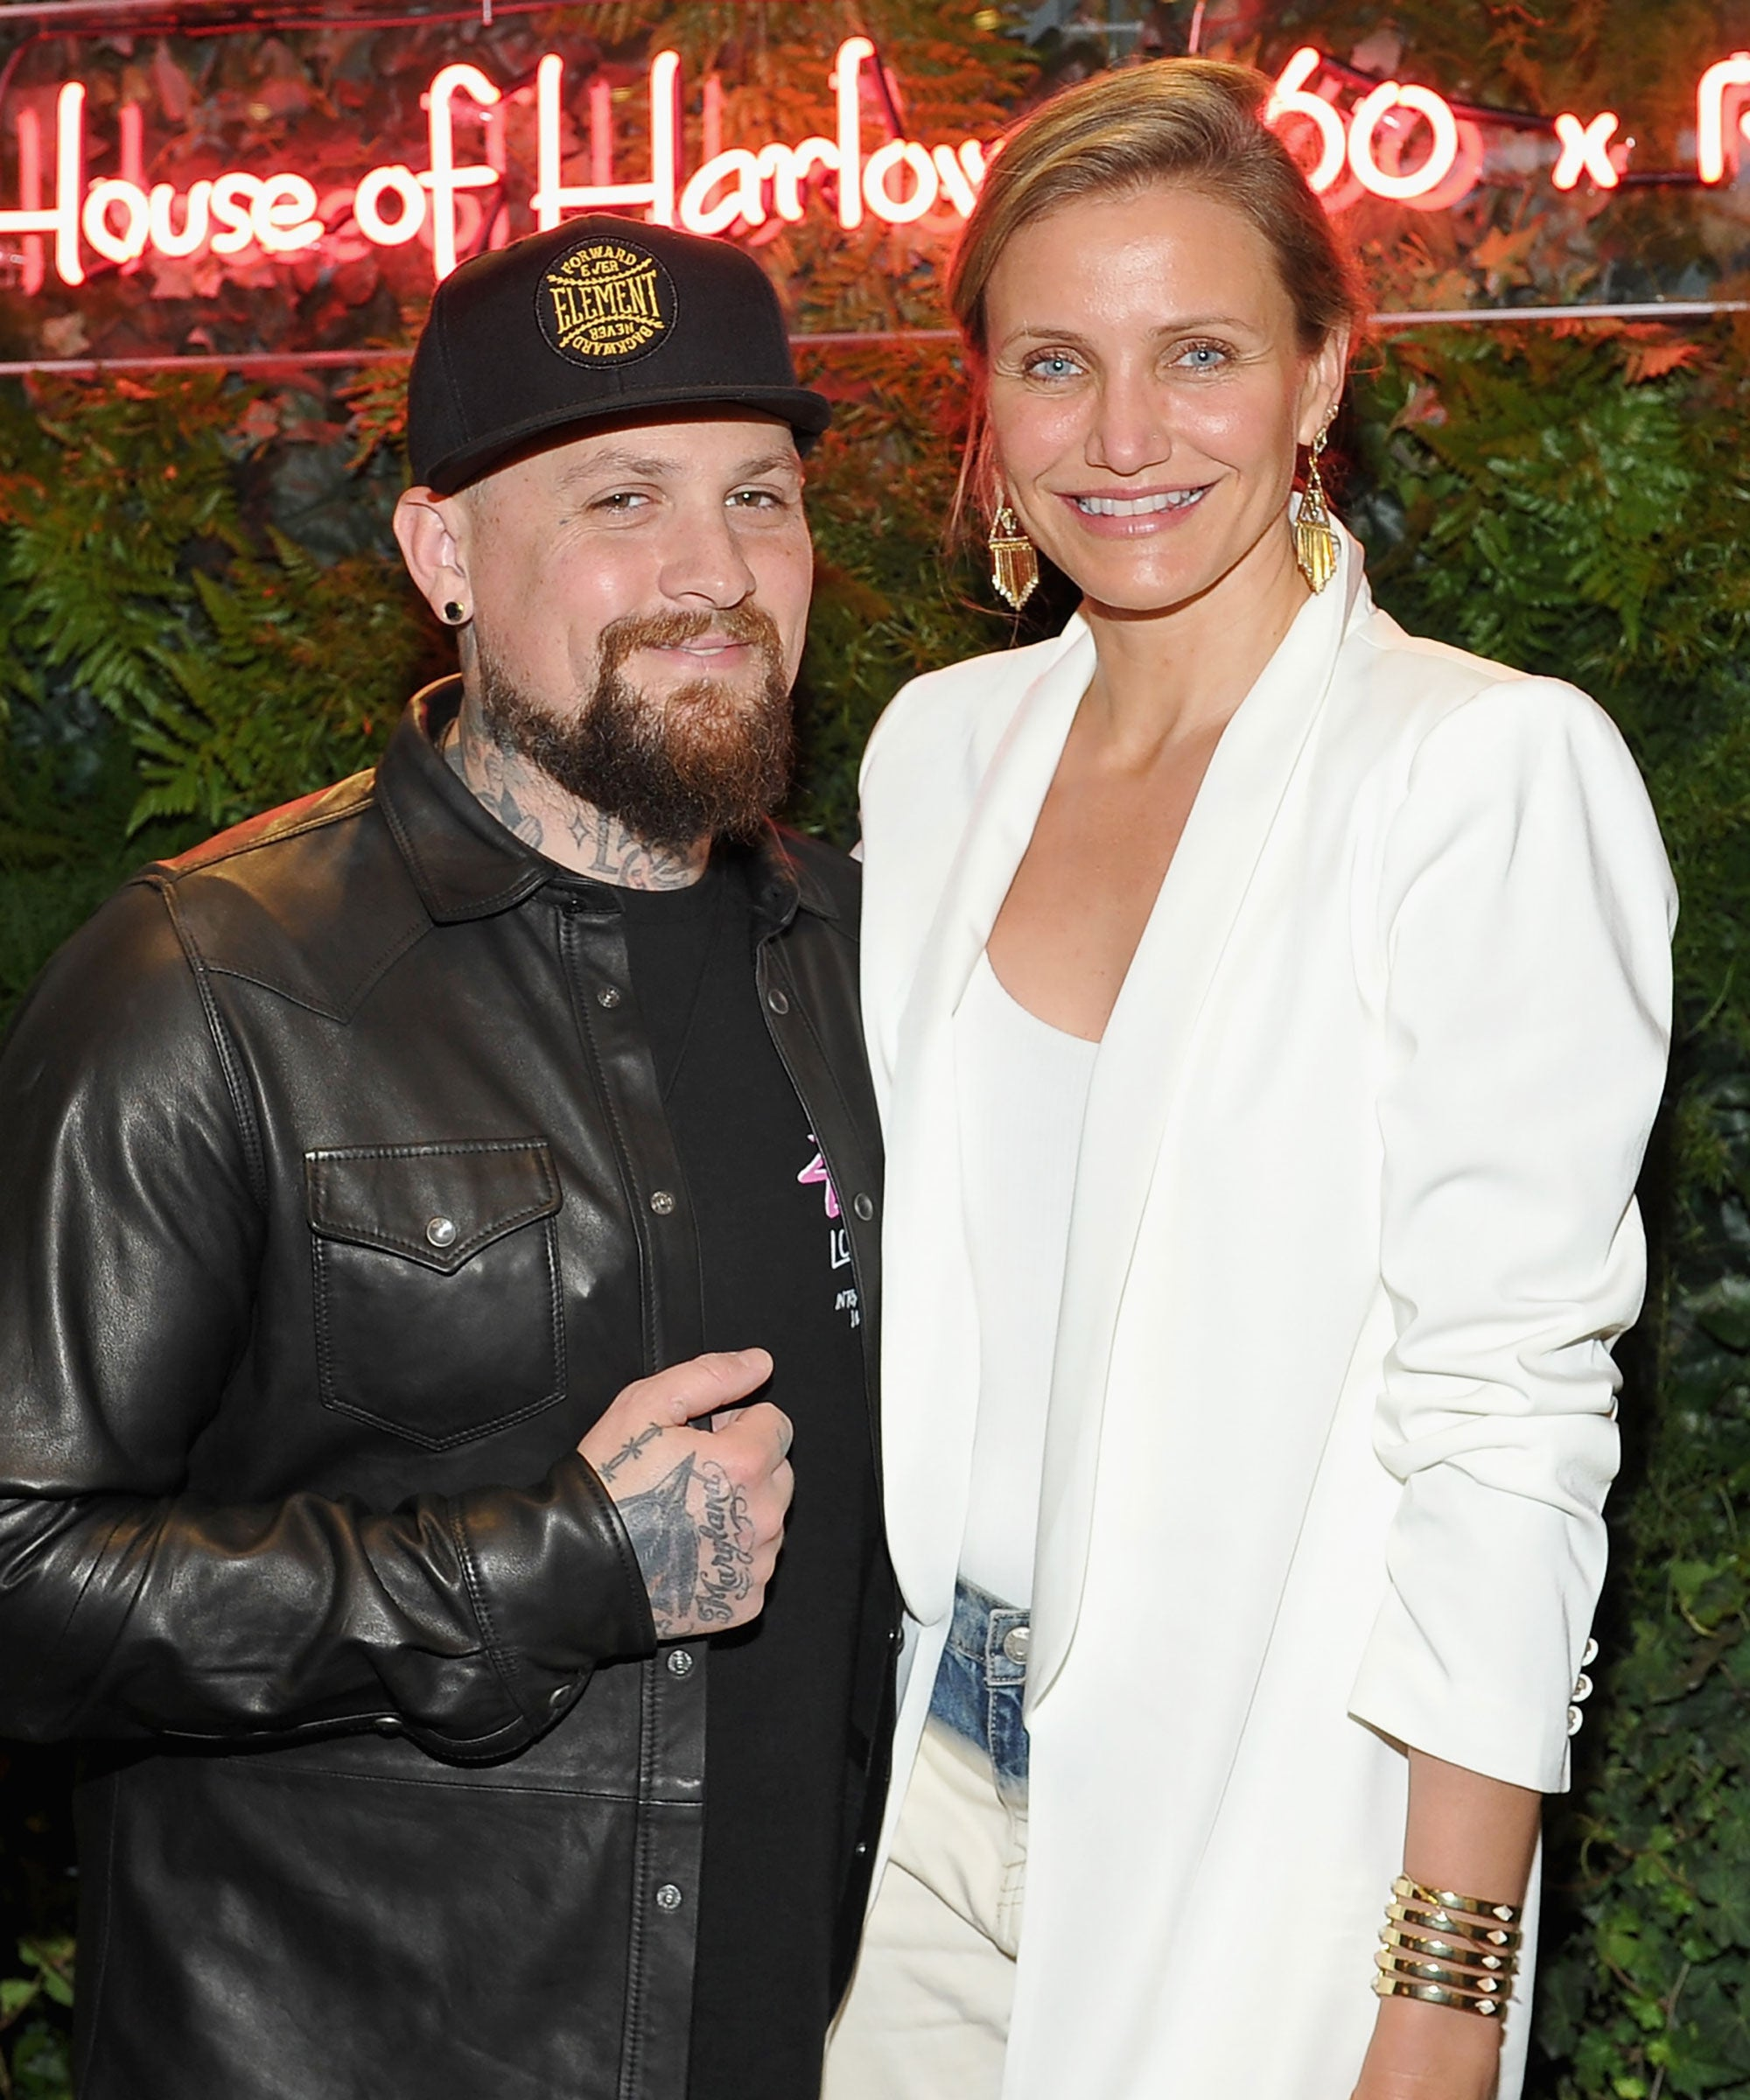 Cameron Diaz & Benji Madden Got Creative With More Than Their Baby's First Name